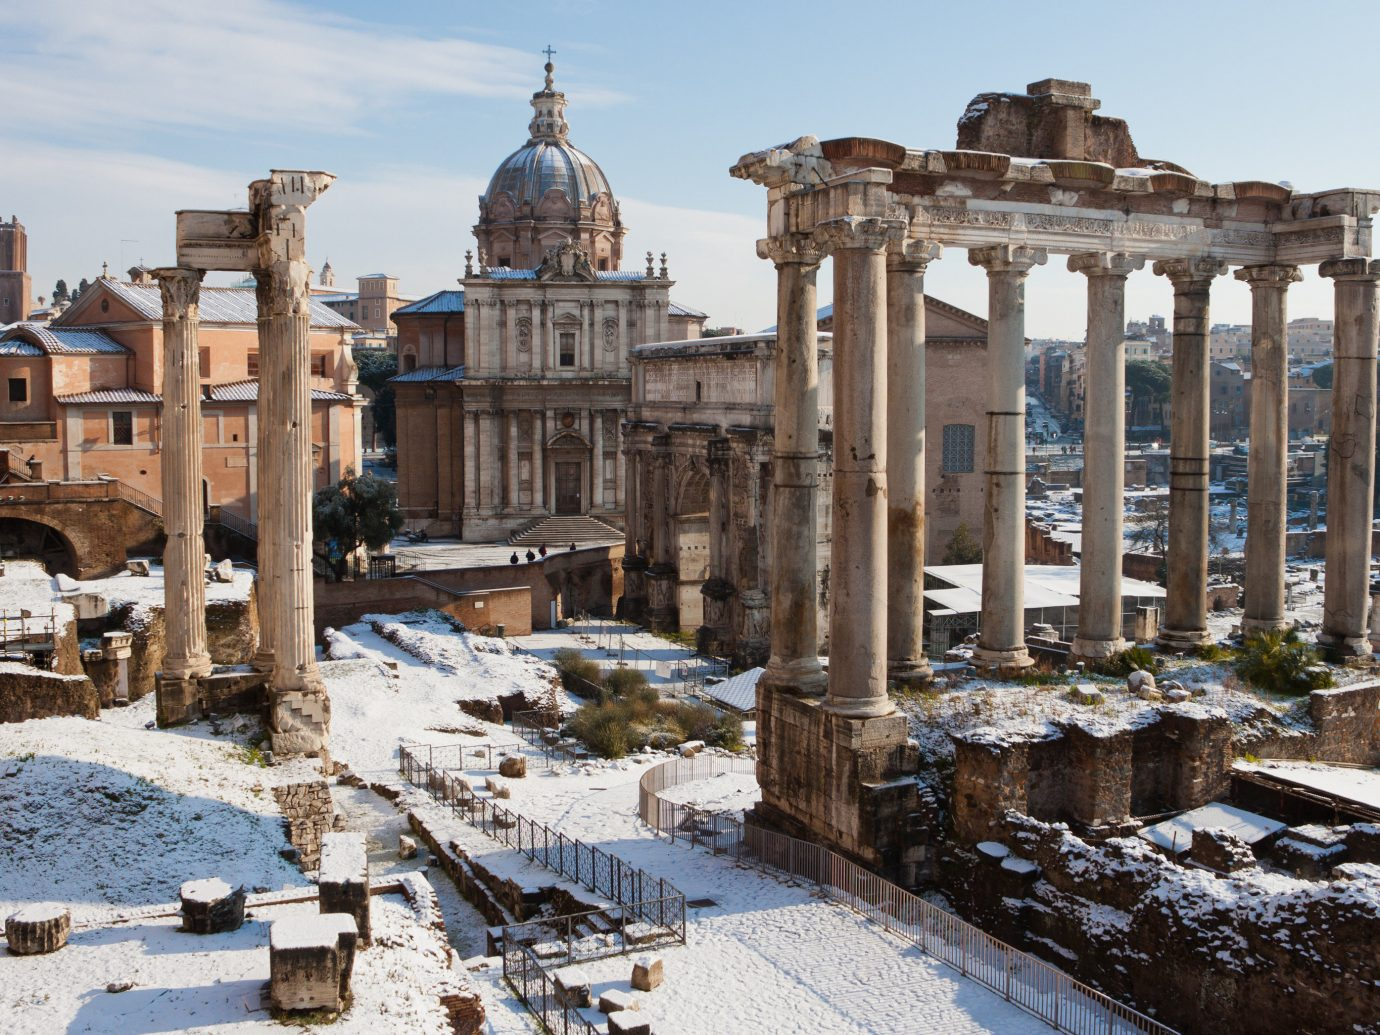 Boutique Hotels Romance Trip Ideas outdoor snow building ancient history Ruins ancient rome ancient roman architecture history historic site archaeological site Winter City tourist attraction sky plaza column facade ruin day colonnade